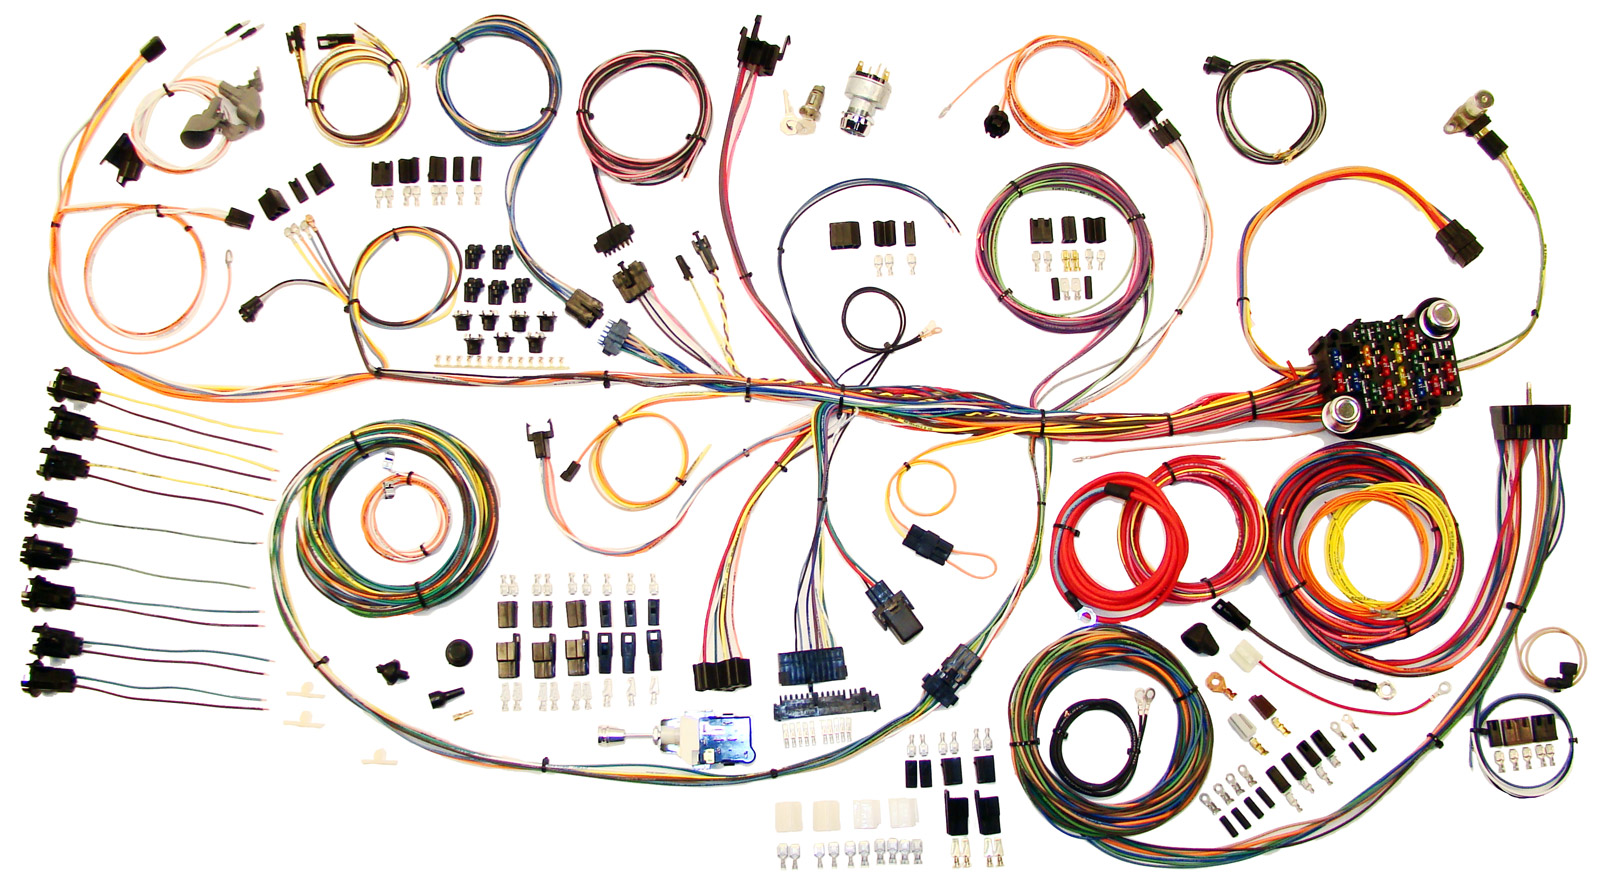 64 67 gto lemans classic update wiring harness kit 510188. Black Bedroom Furniture Sets. Home Design Ideas